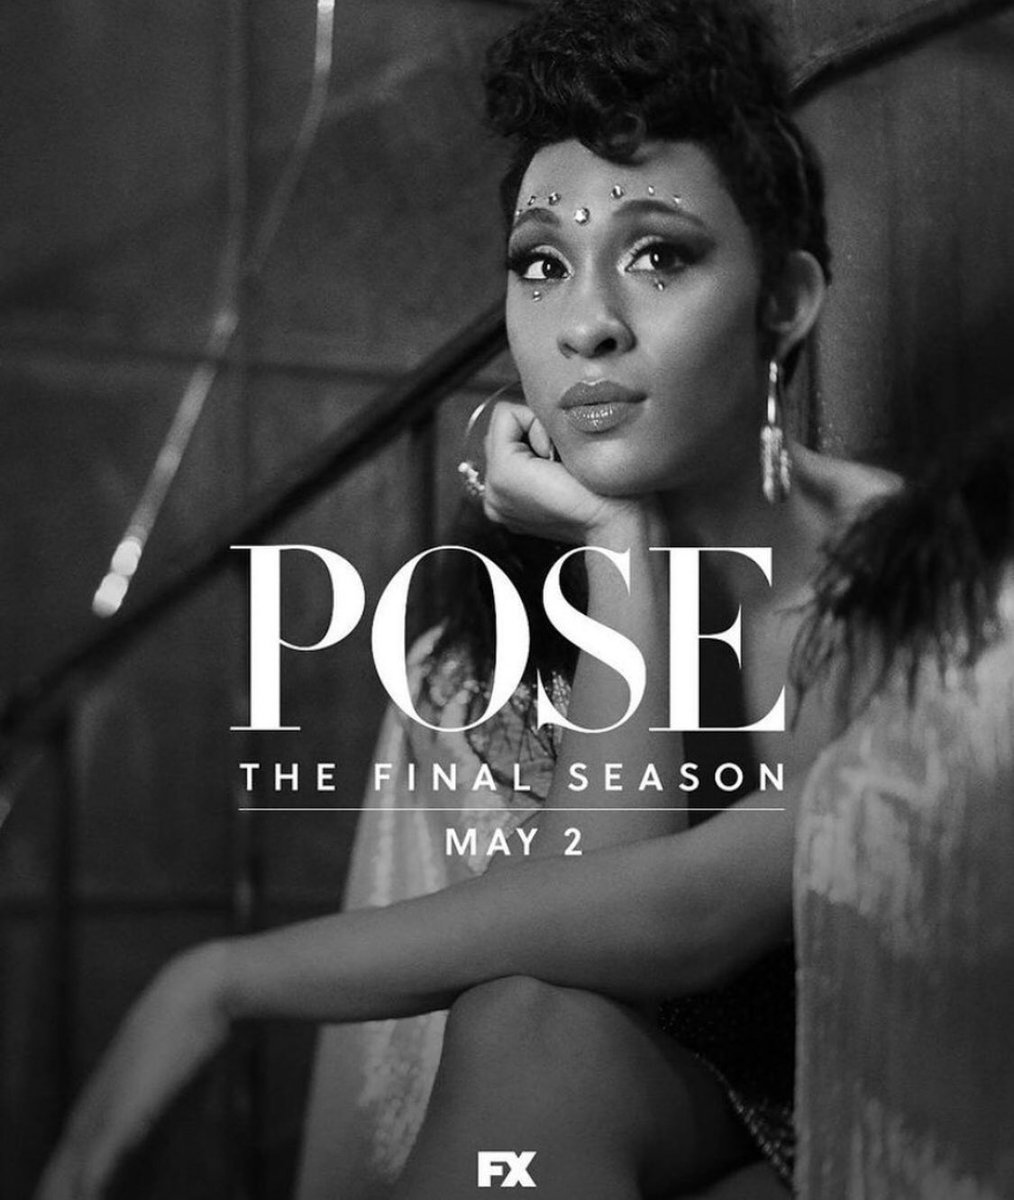 """.@MjRodriguez7 responds to the announcement that 'Pose' will end with season 3 in new Instagram post:  """"We made herstory and more than anything... we scratched the surface, simply to make change! We successfully succeeded! No longer will trans women be seen as disposable..."""""""